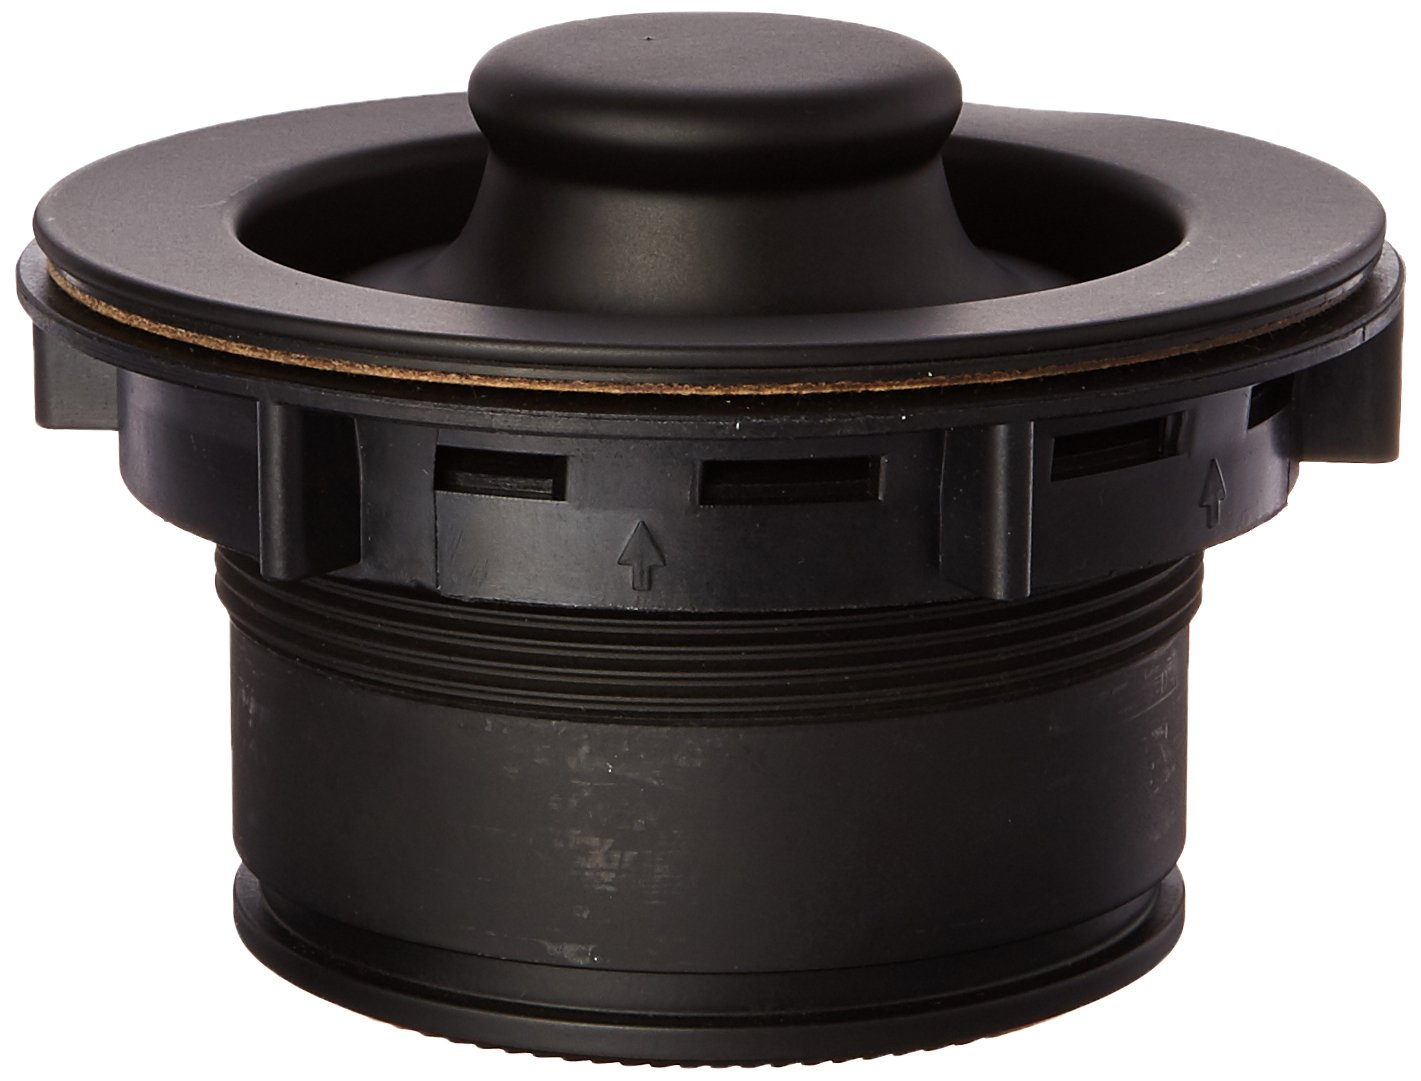 Mr. Scrappy CSFS-BK-93 Custom Color Sink Flange and Stopper Set, Black